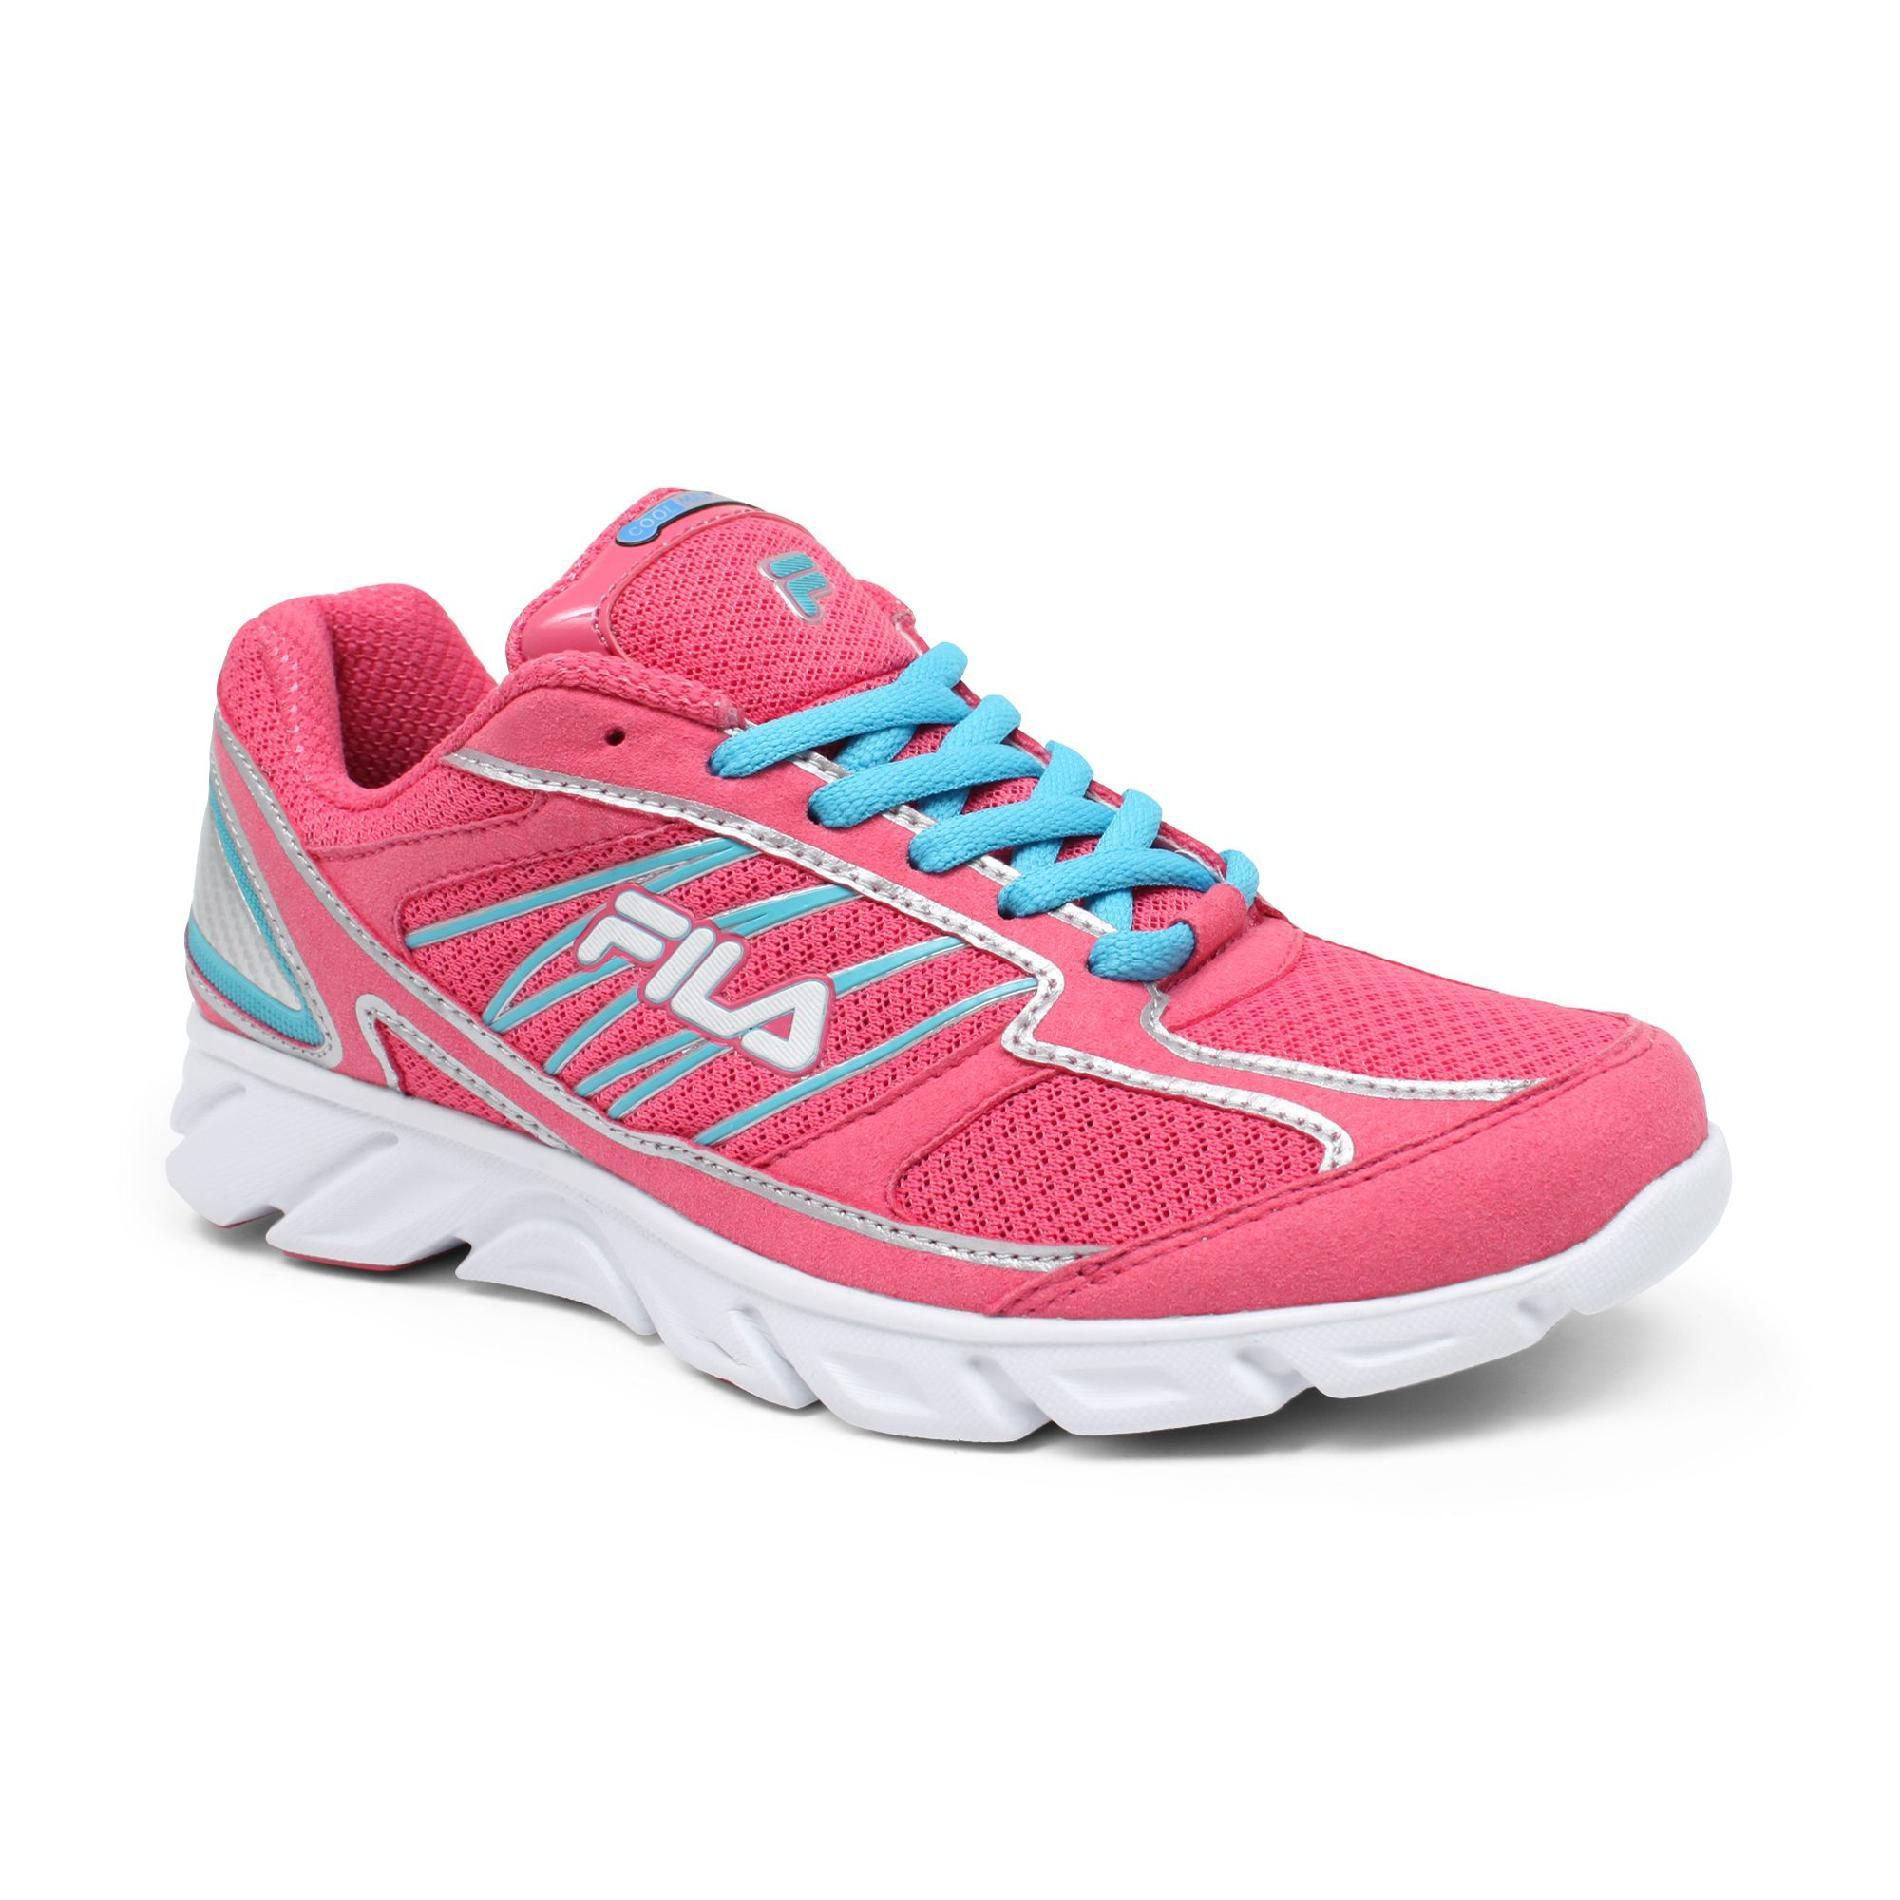 25b5034e4468 Fila- -Girl s Athletic Shoe Radical Lite - Pink White Blue-Shoes-Girls Shoes -Girls Sneakers